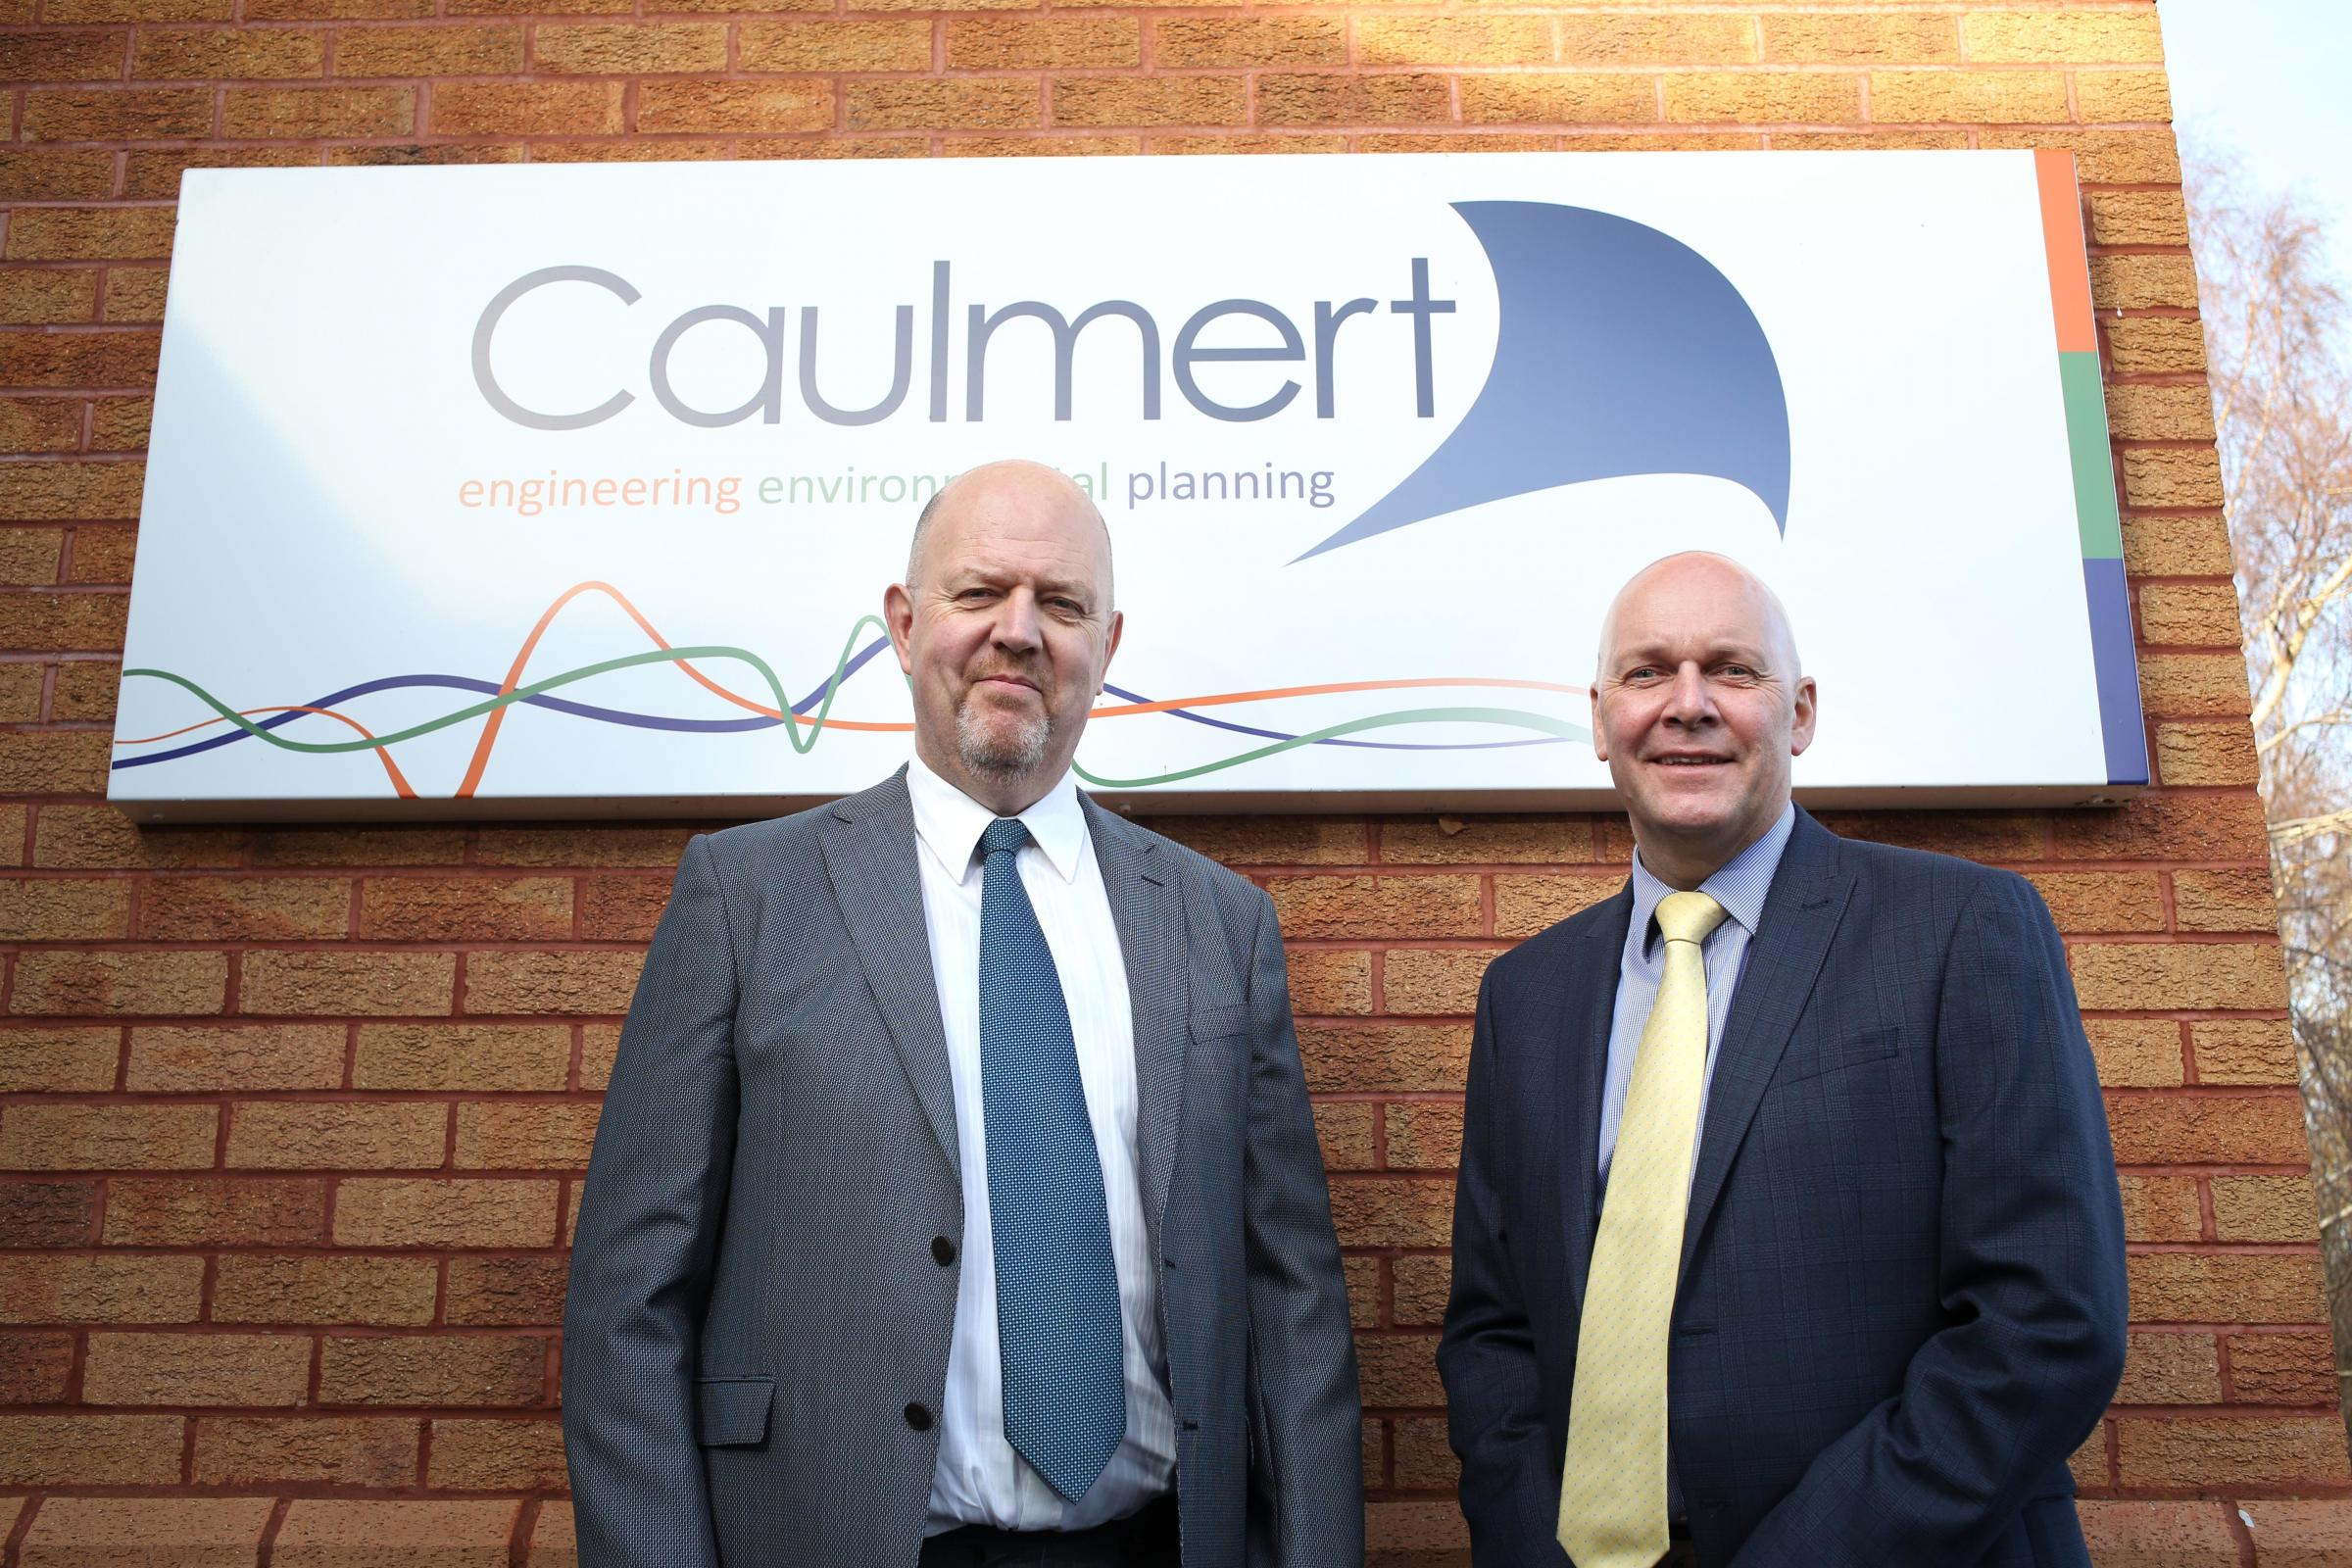 Jon Hartley, (left) the newest member of the Caulmert team at St Asaph with company founder and MD Mike Caulfield